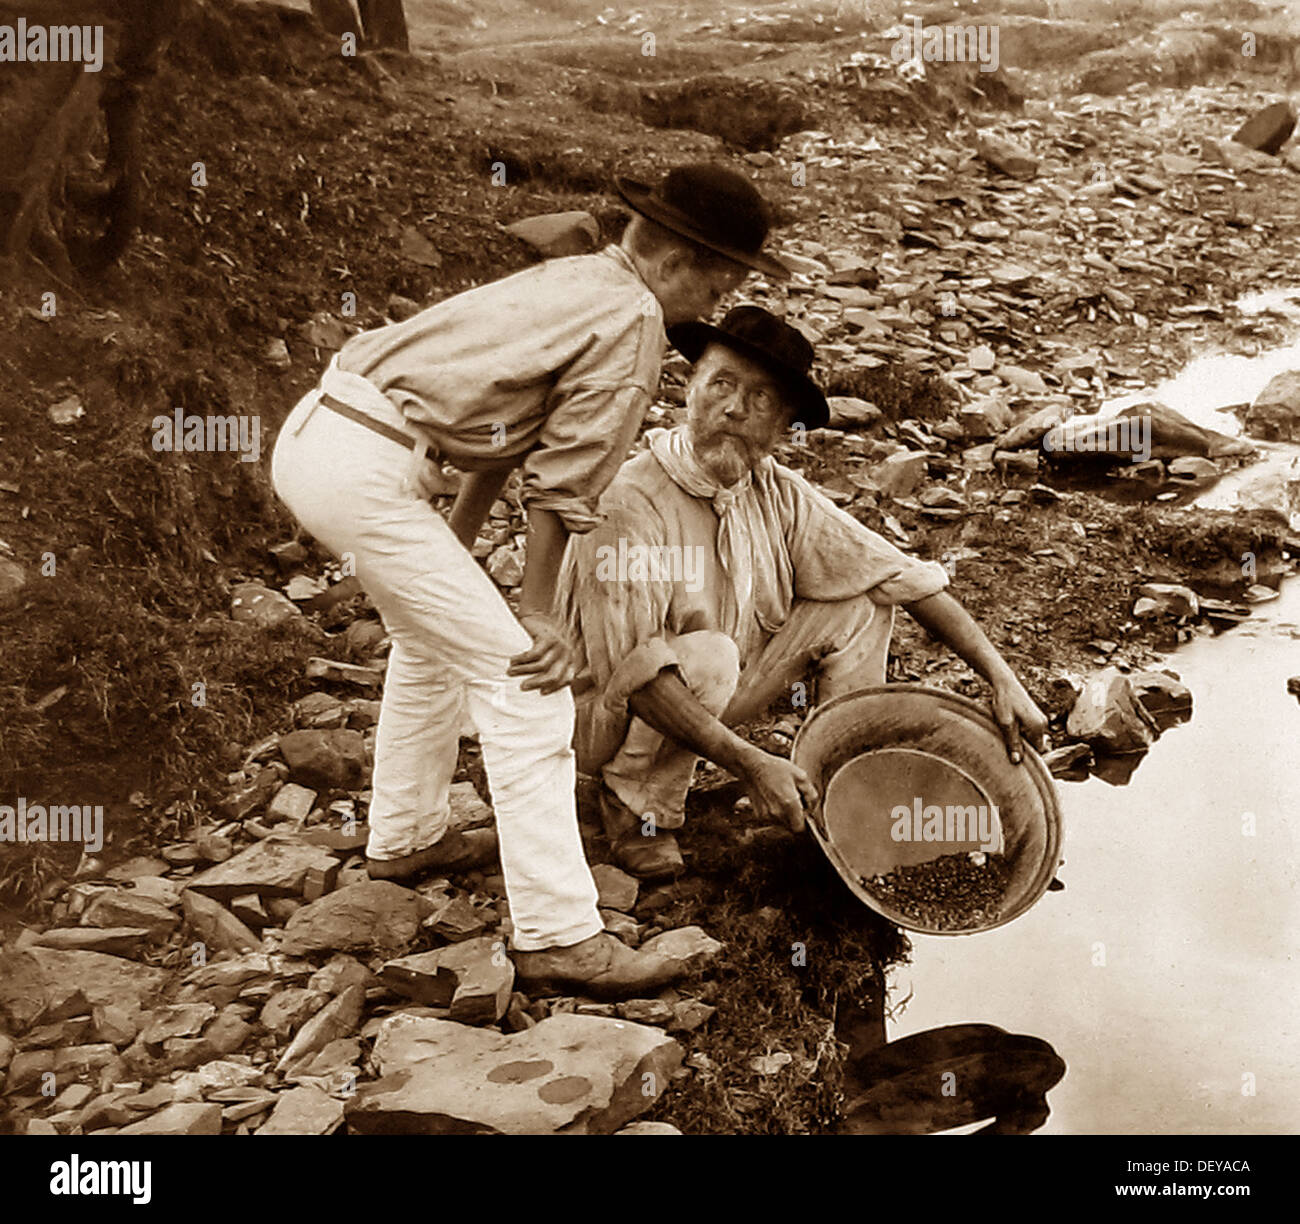 Alluvial Gold Miners Stock Photos & Alluvial Gold Miners Stock